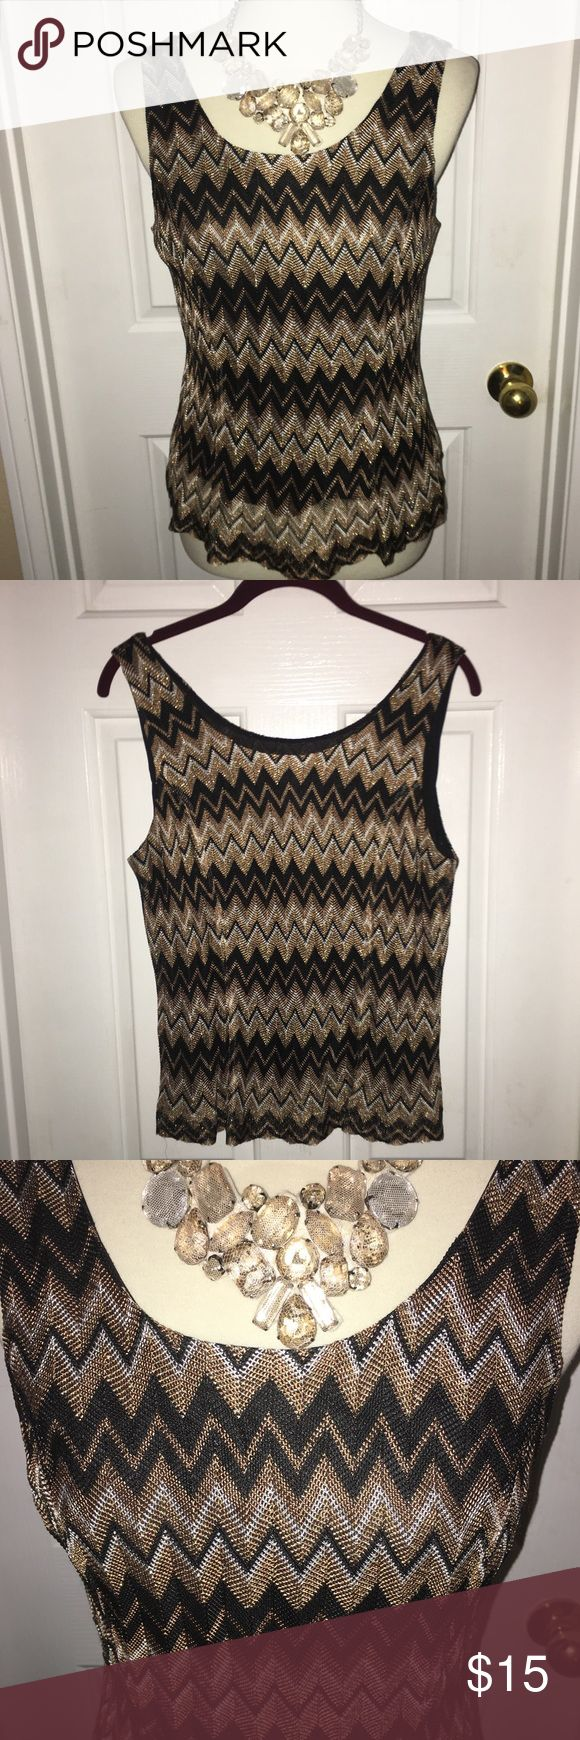 KASPER PETITE MESH TANK TOP GUC wore once. Festive gold and black to dress up for a night out or layer for office. Mesh like material and fully lined. Says dry clean but hand washed nicely. Bundle item. Kasper Tops Tank Tops